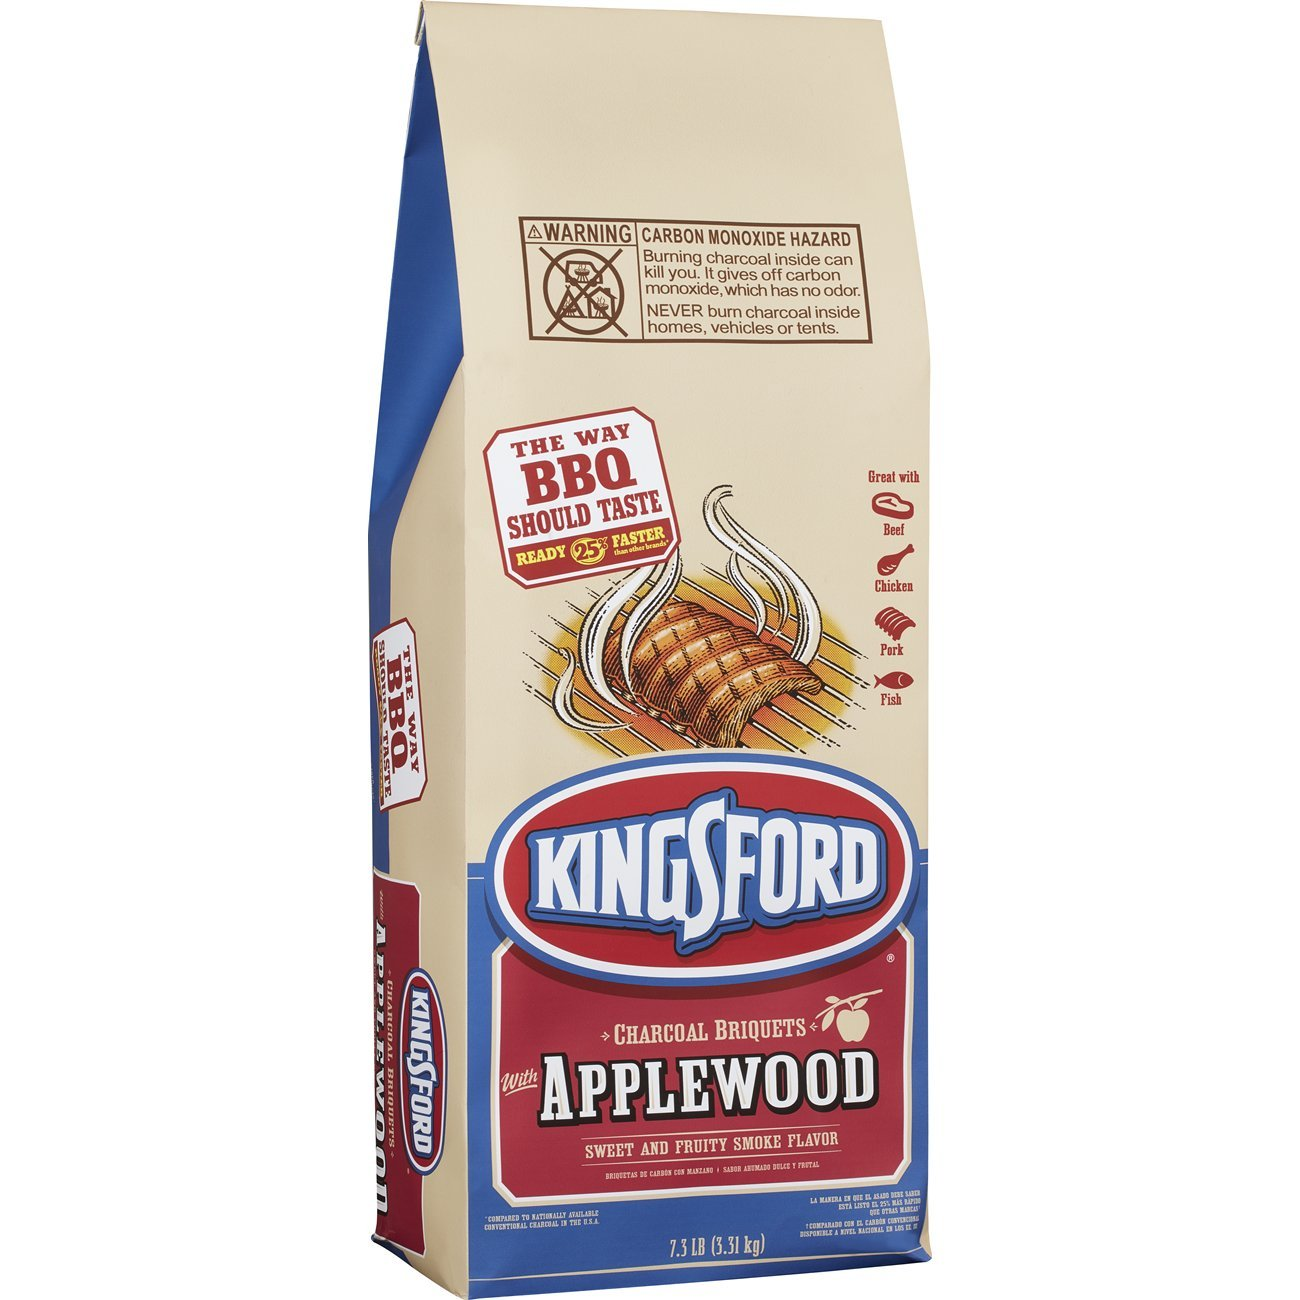 Kingsford Original Charcoal Briquettes with Applewood, 7.3 Pounds